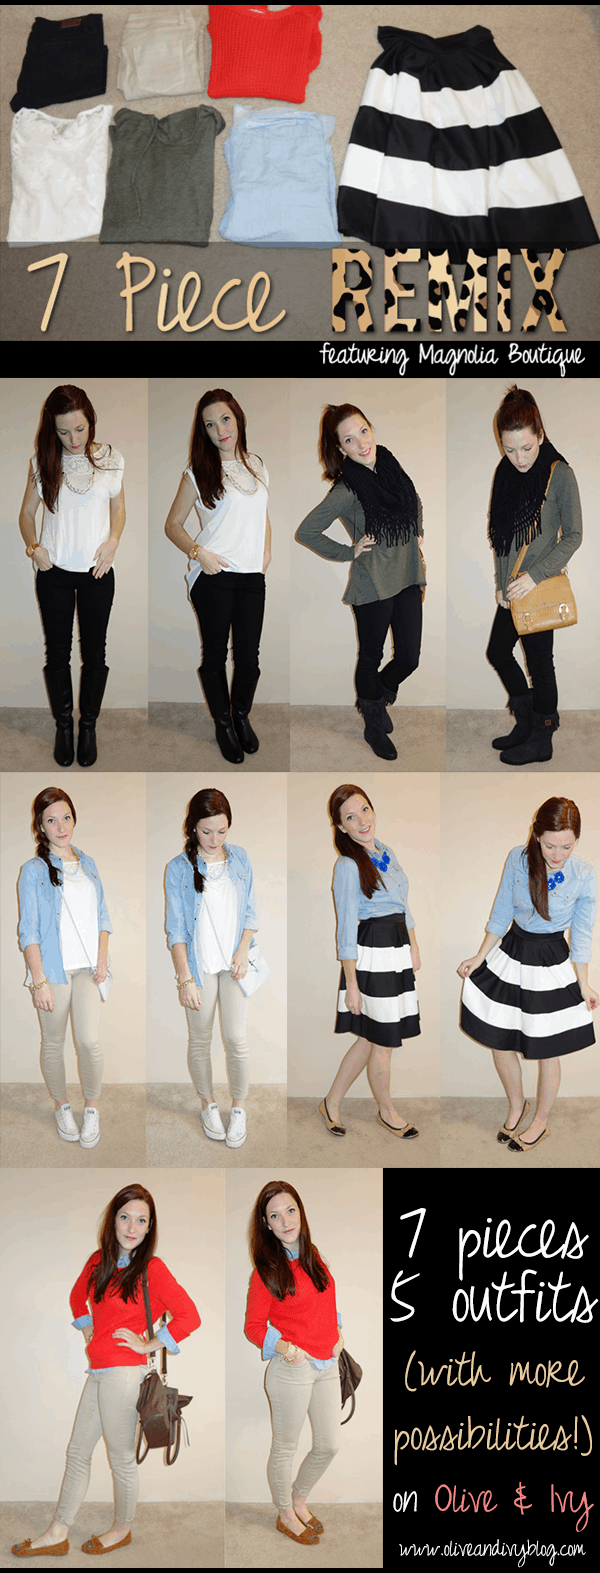 FIVE outfits from only SEVEN pieces of clothing!